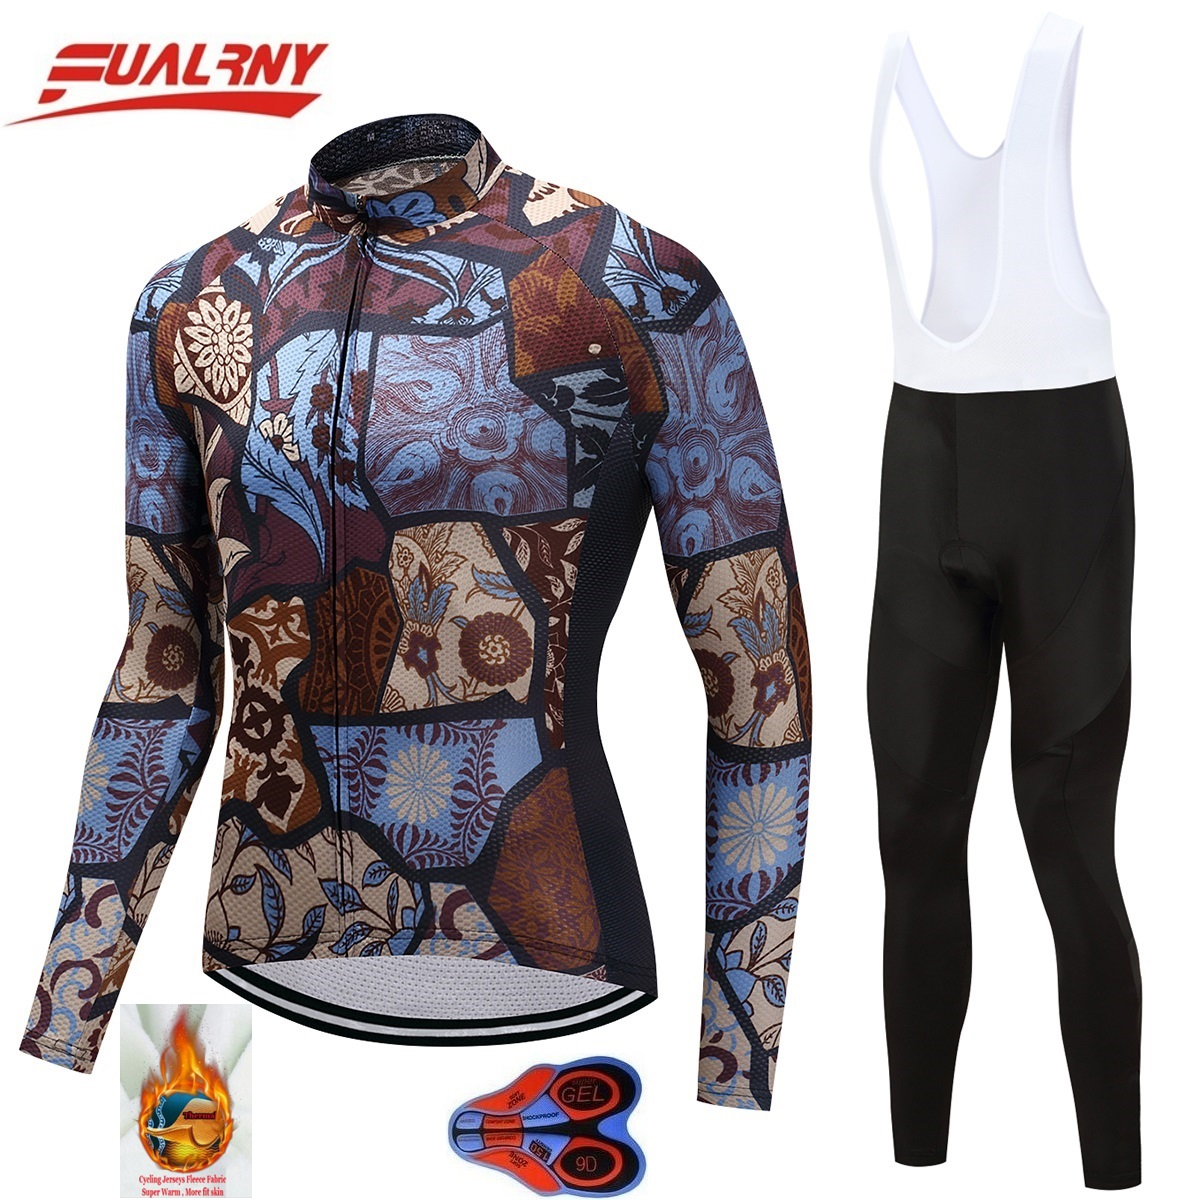 2018 NEW Team FUALRNY Long sleeve Ropa Ciclismo Cycling Jersey set 9D/winter Thermal Fleece/MTB Bike For Man Stitching pattern2018 NEW Team FUALRNY Long sleeve Ropa Ciclismo Cycling Jersey set 9D/winter Thermal Fleece/MTB Bike For Man Stitching pattern